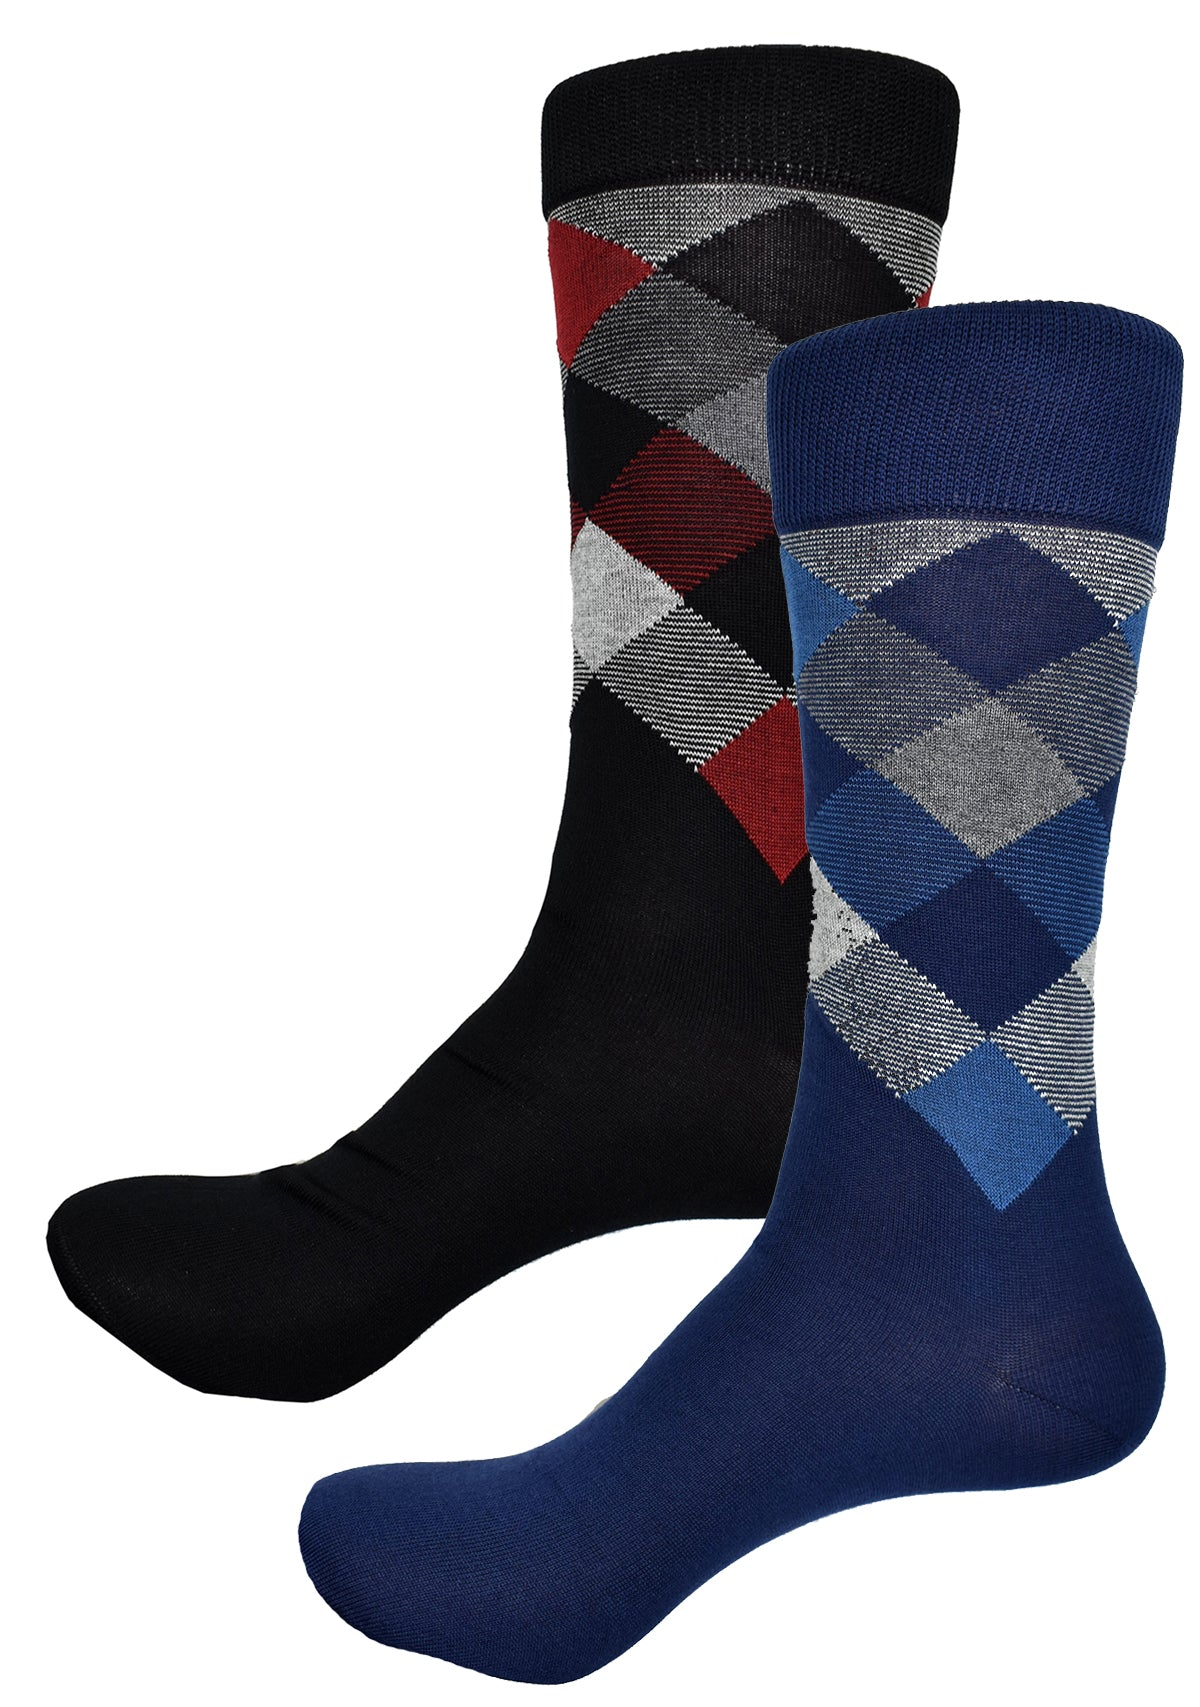 ZV1422 Argyle Sport - Navy or Black